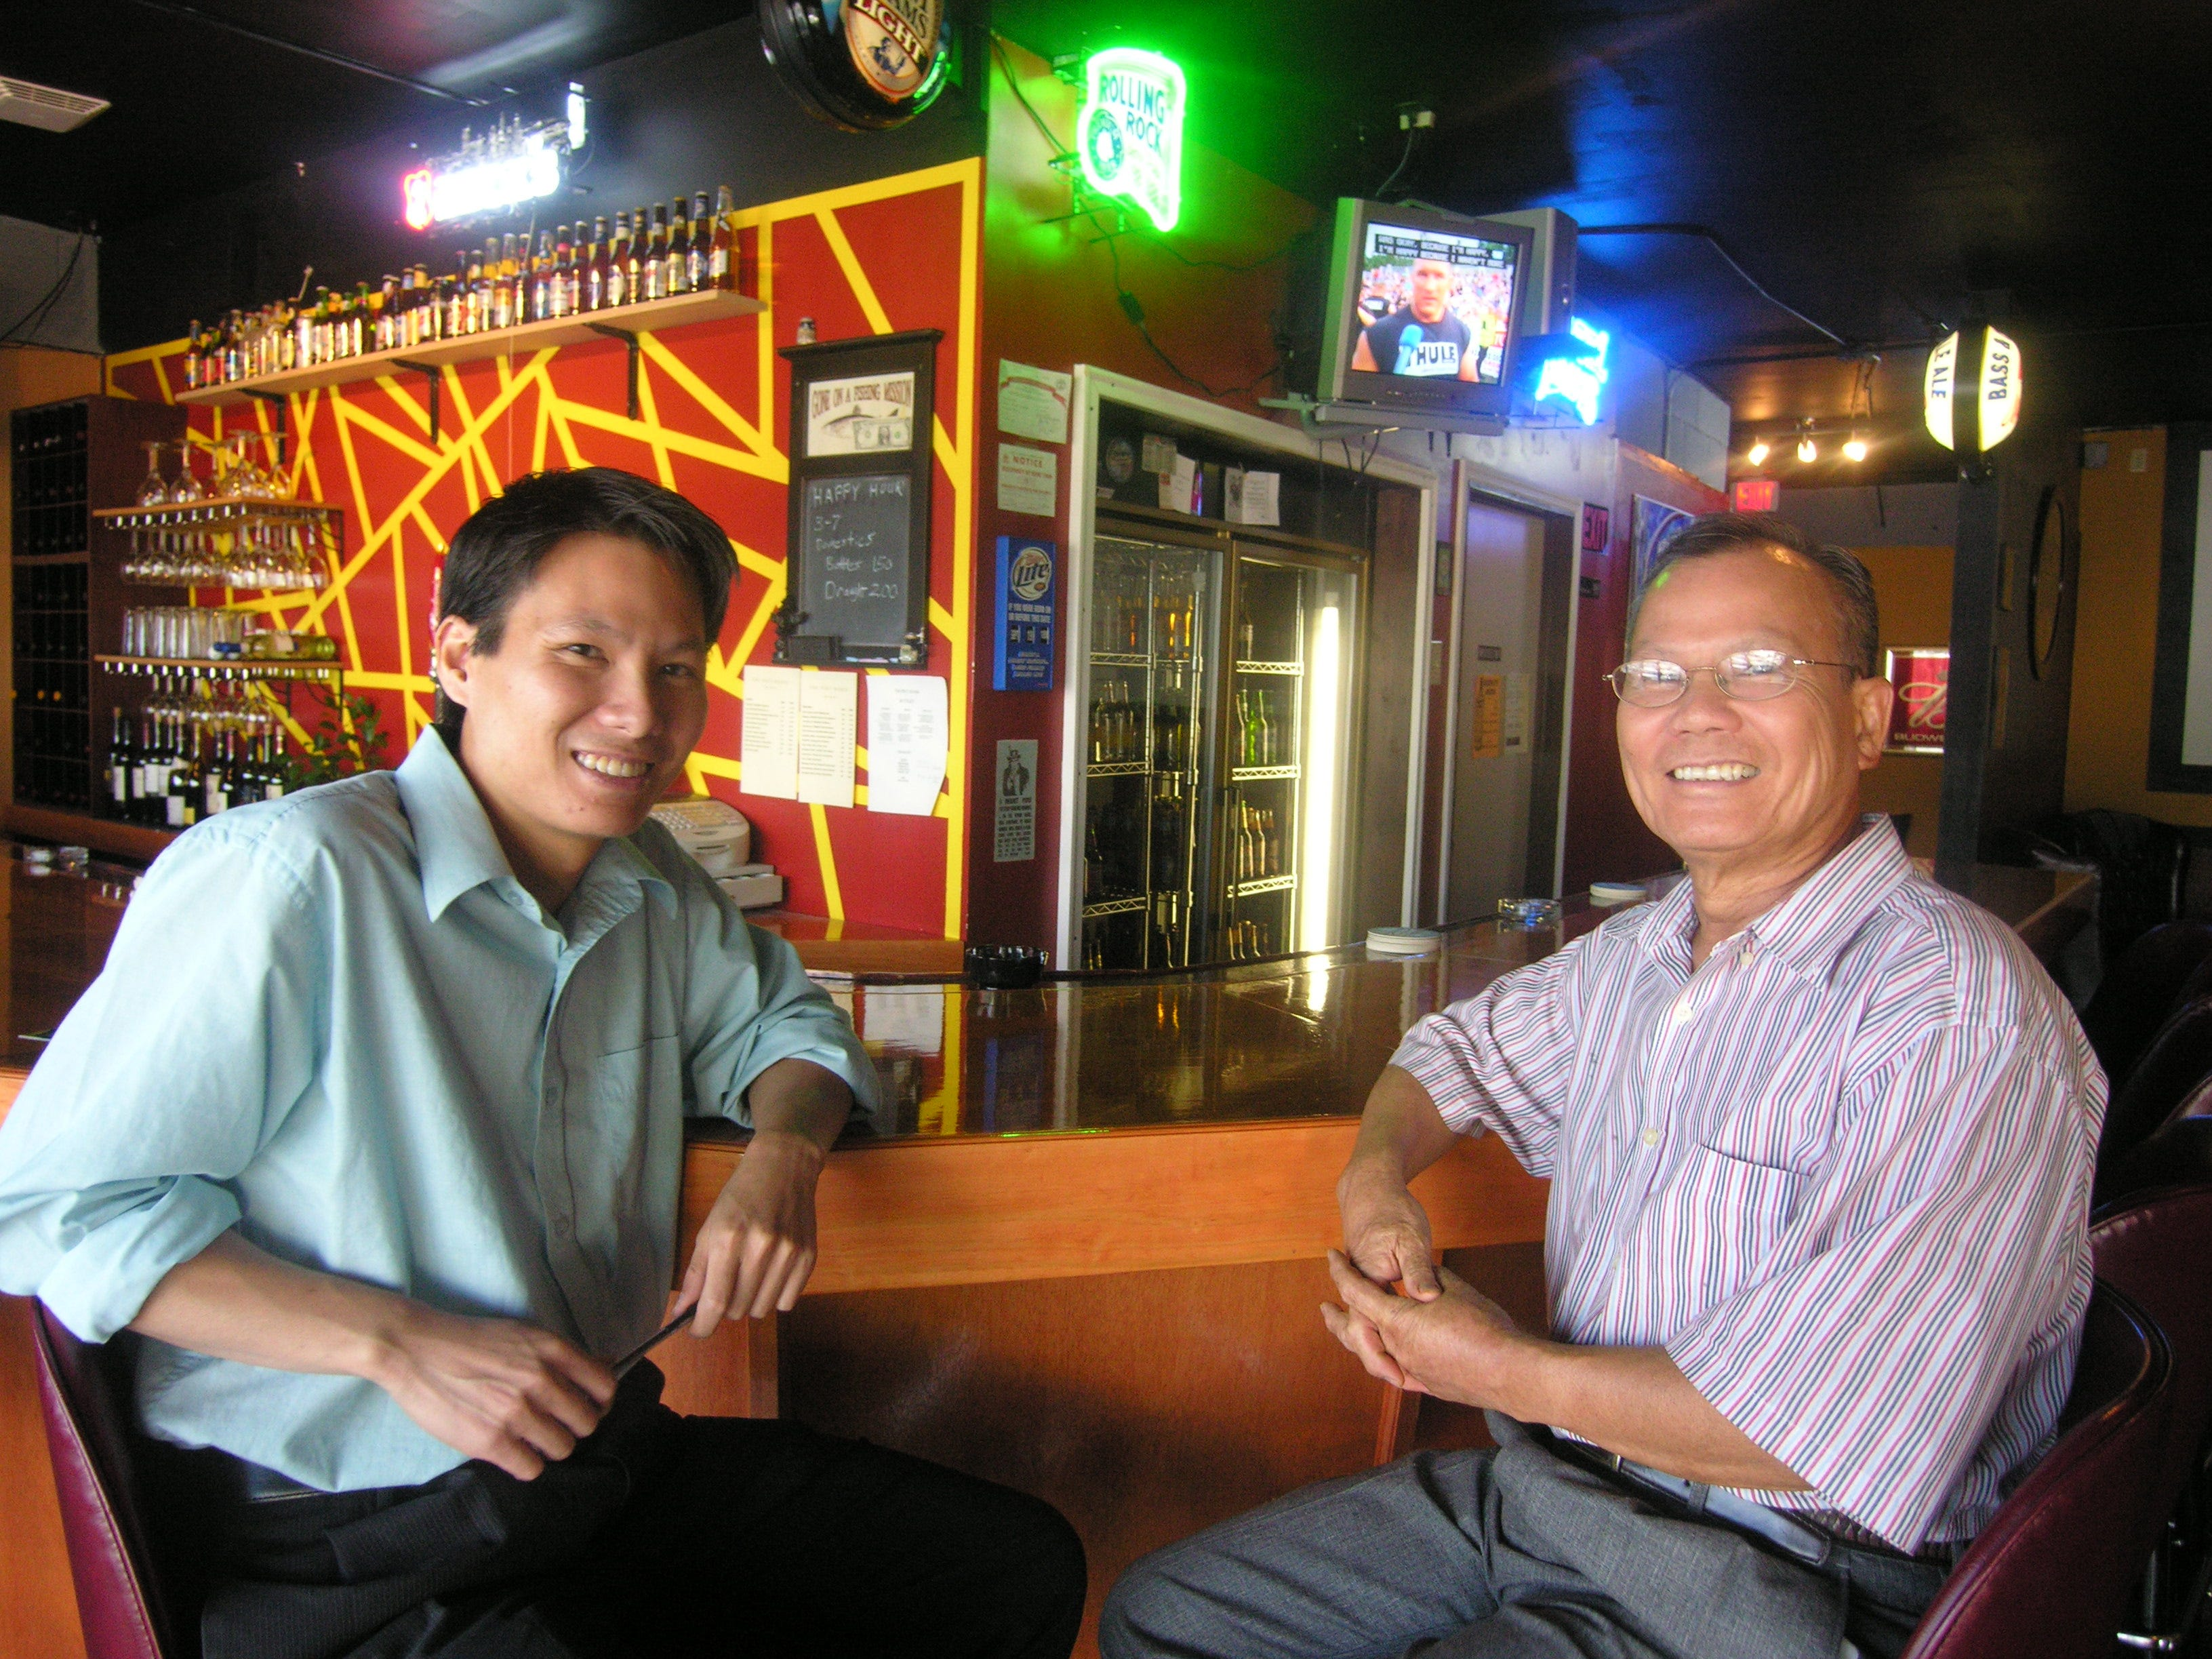 Thoai Ho, left, and his father, Thanh Ho, sit at the bar of the Pint House in 2006. The Ho family opened the establishment next to their T. Ho Bistro restaurant on Merchant Drive. Thoai Ho says the Pint House is a neighborhood pub, but with a menu of Vietnamese food.